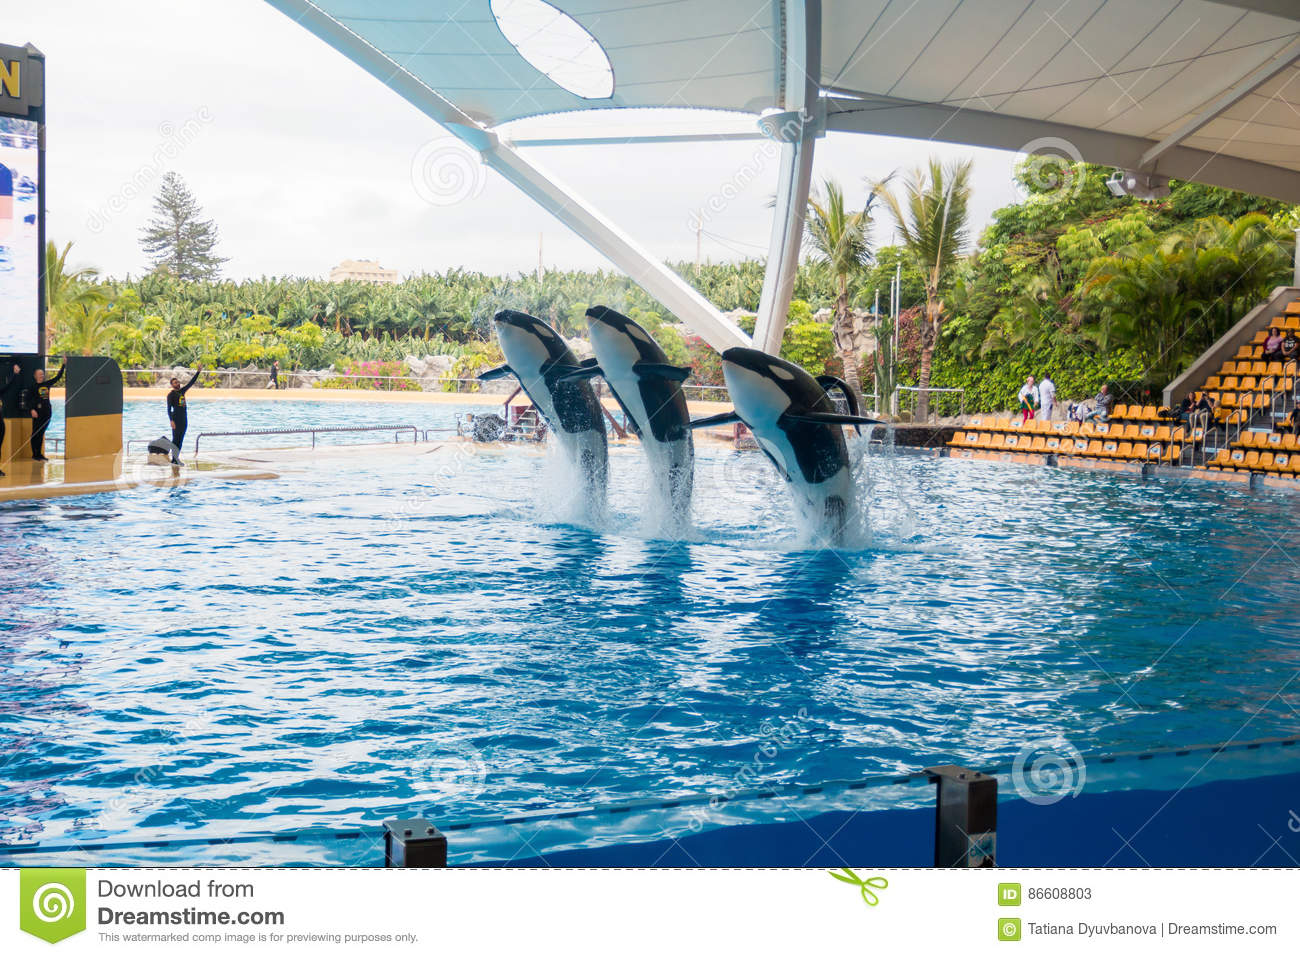 show of killer whales in the loro parque which is now